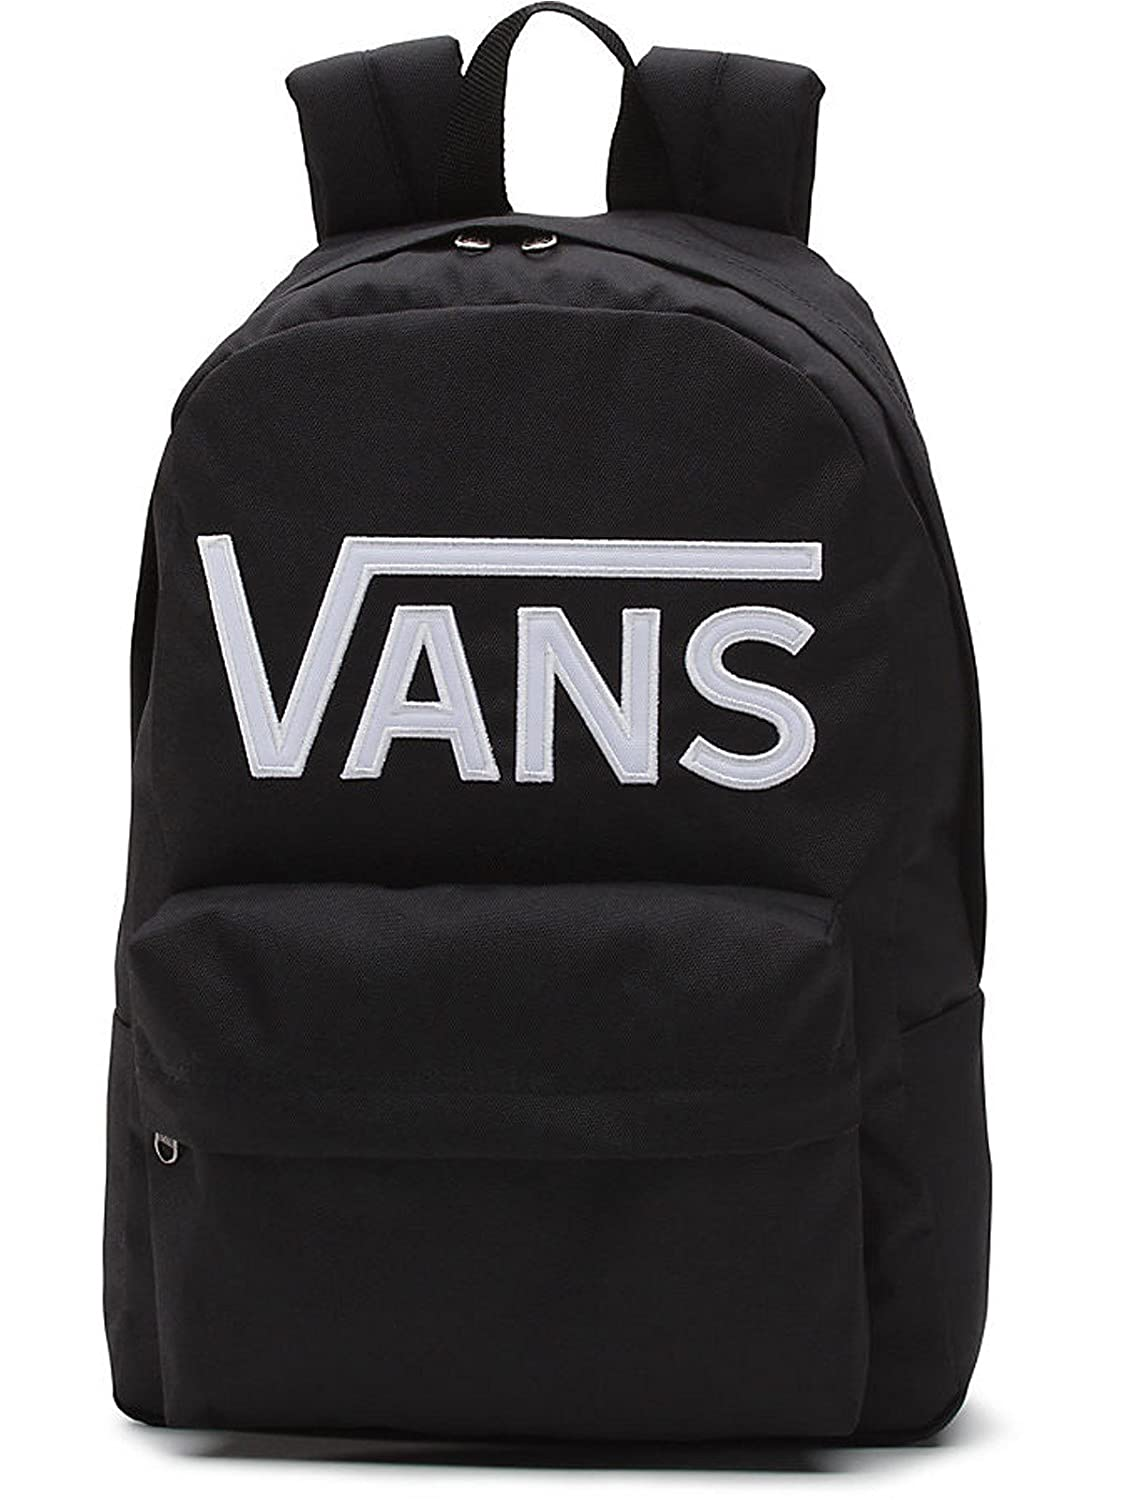 187b4fa9820 vans black and white checkered backpack   OFF52% Discounts